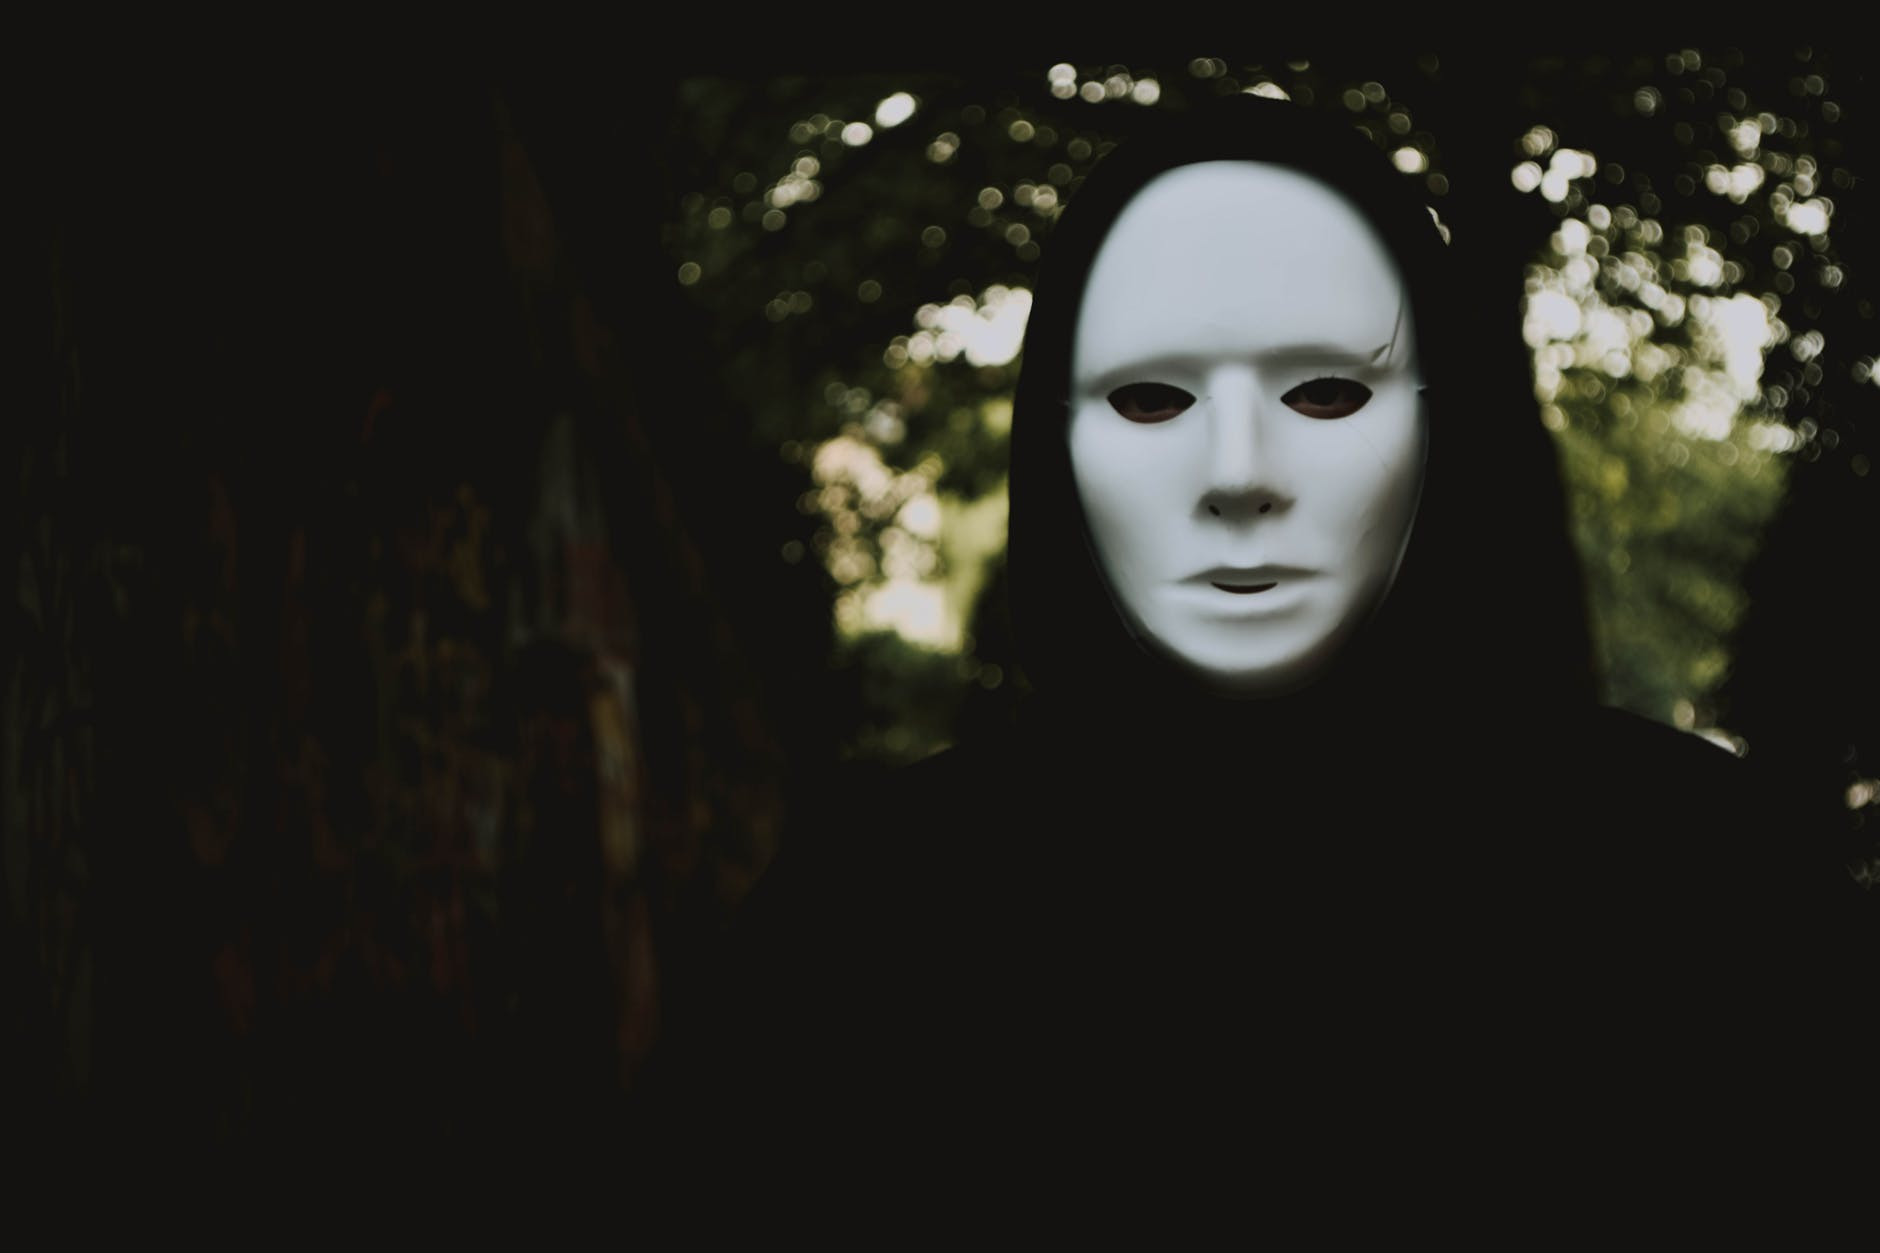 selective focus photography of person wearing mask